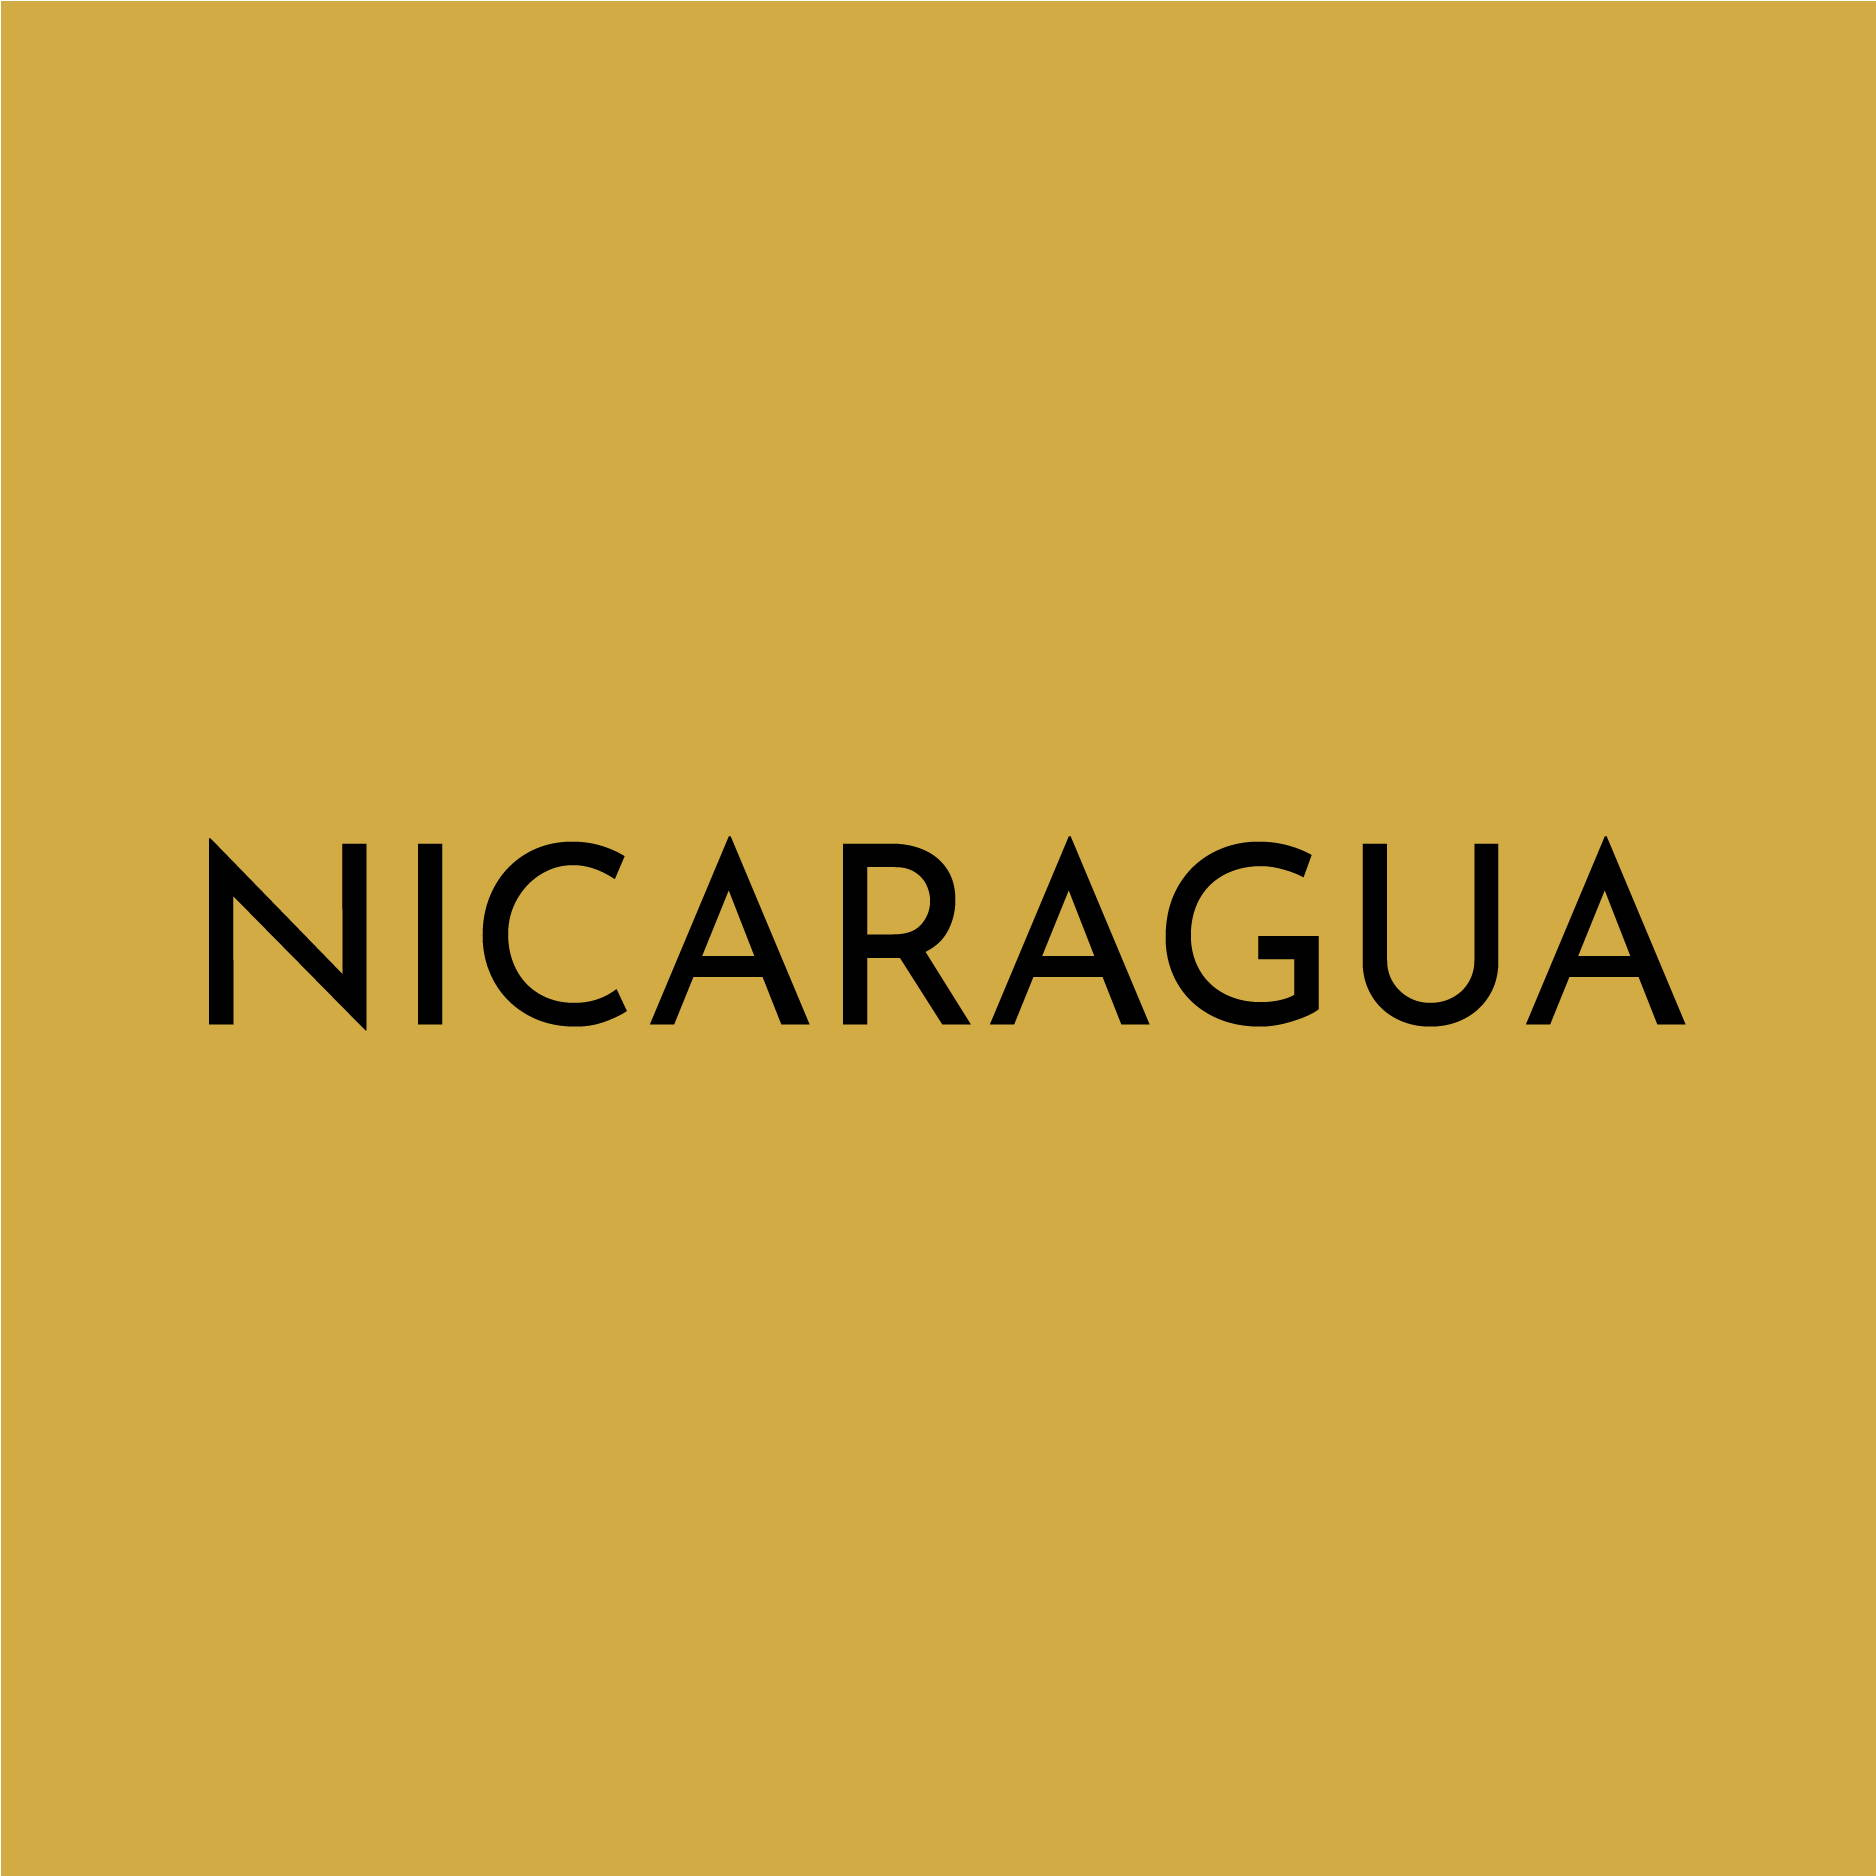 "A solid yellow block contains the text ""NICARAGUA"""